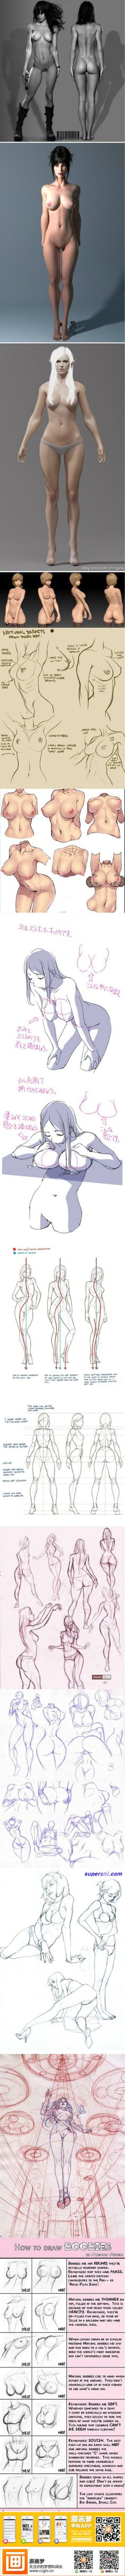 Body anatomy. How to draw female body.